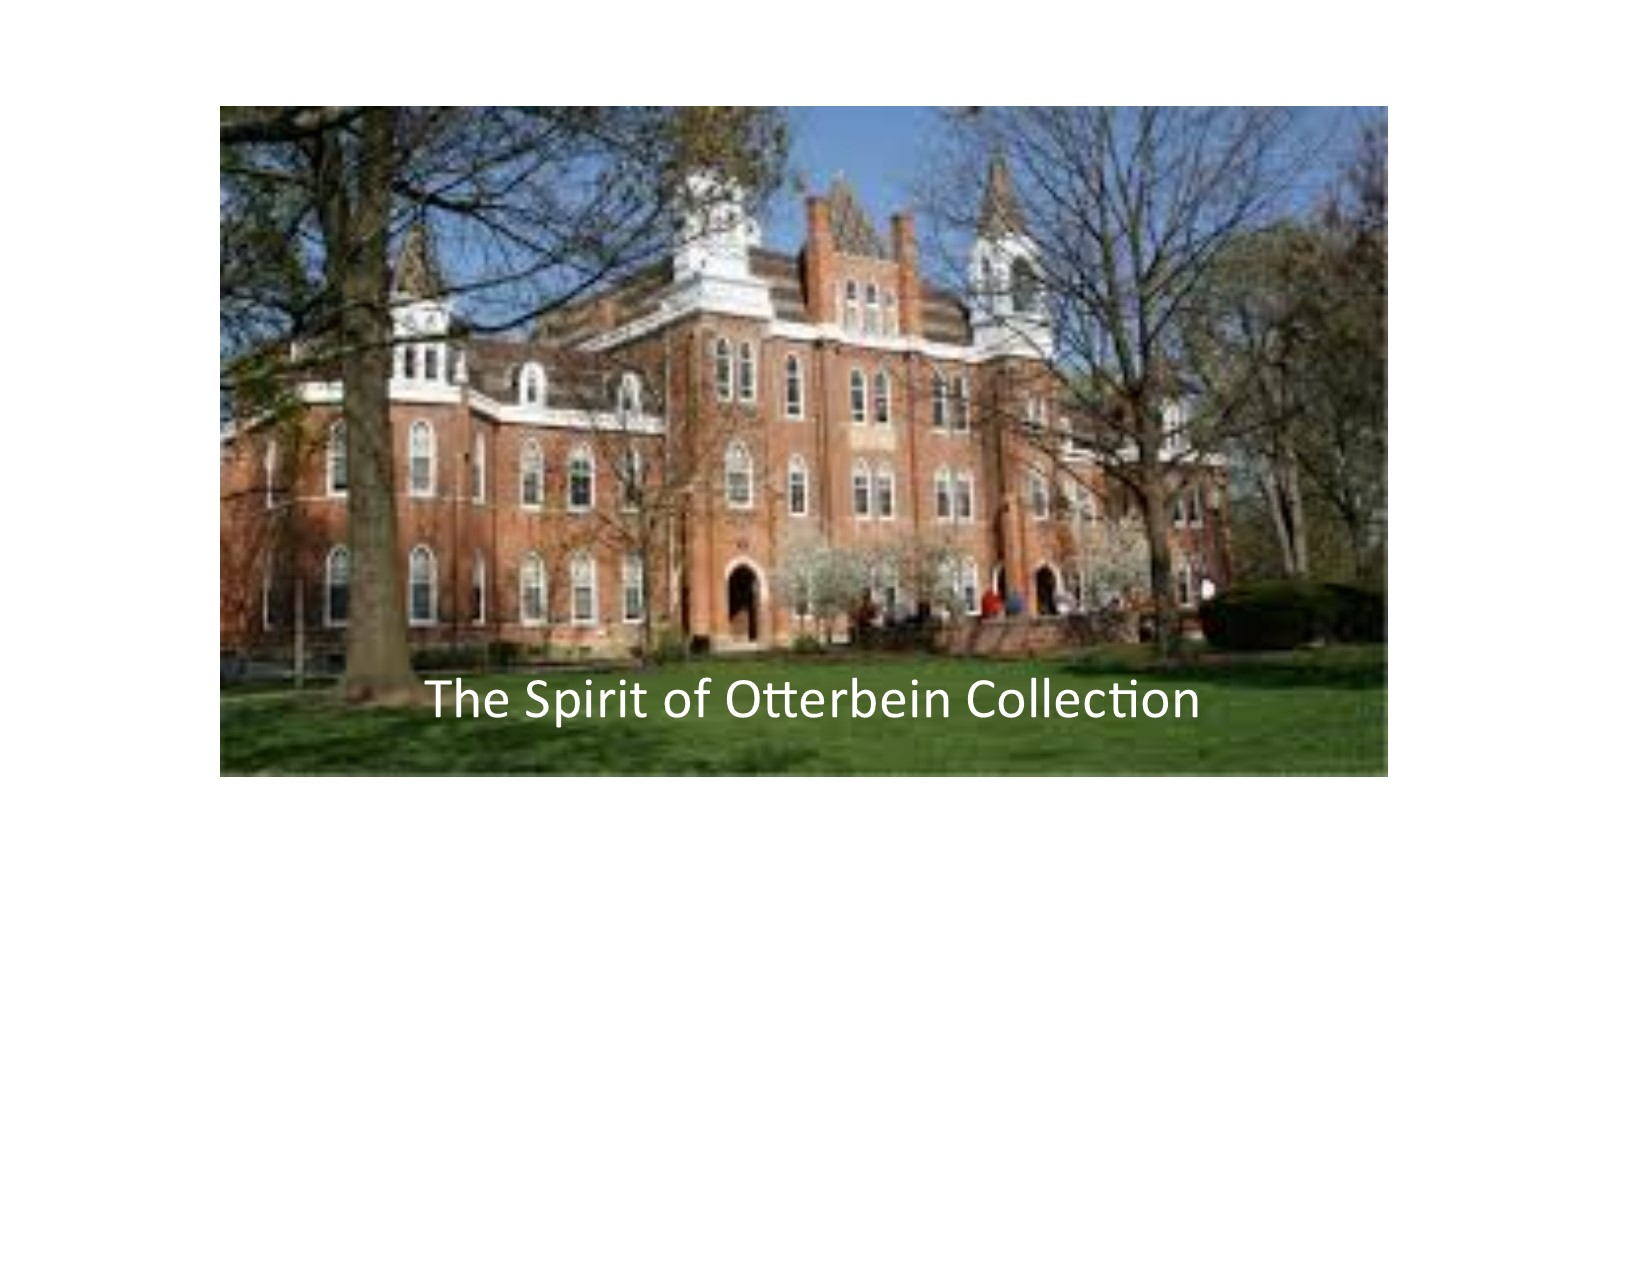 otterbein dating On that date in 1800, a group of ministers met in frederick, maryland, and took  two significant actions: they elected the first bishops (otterbein and boehm), and .